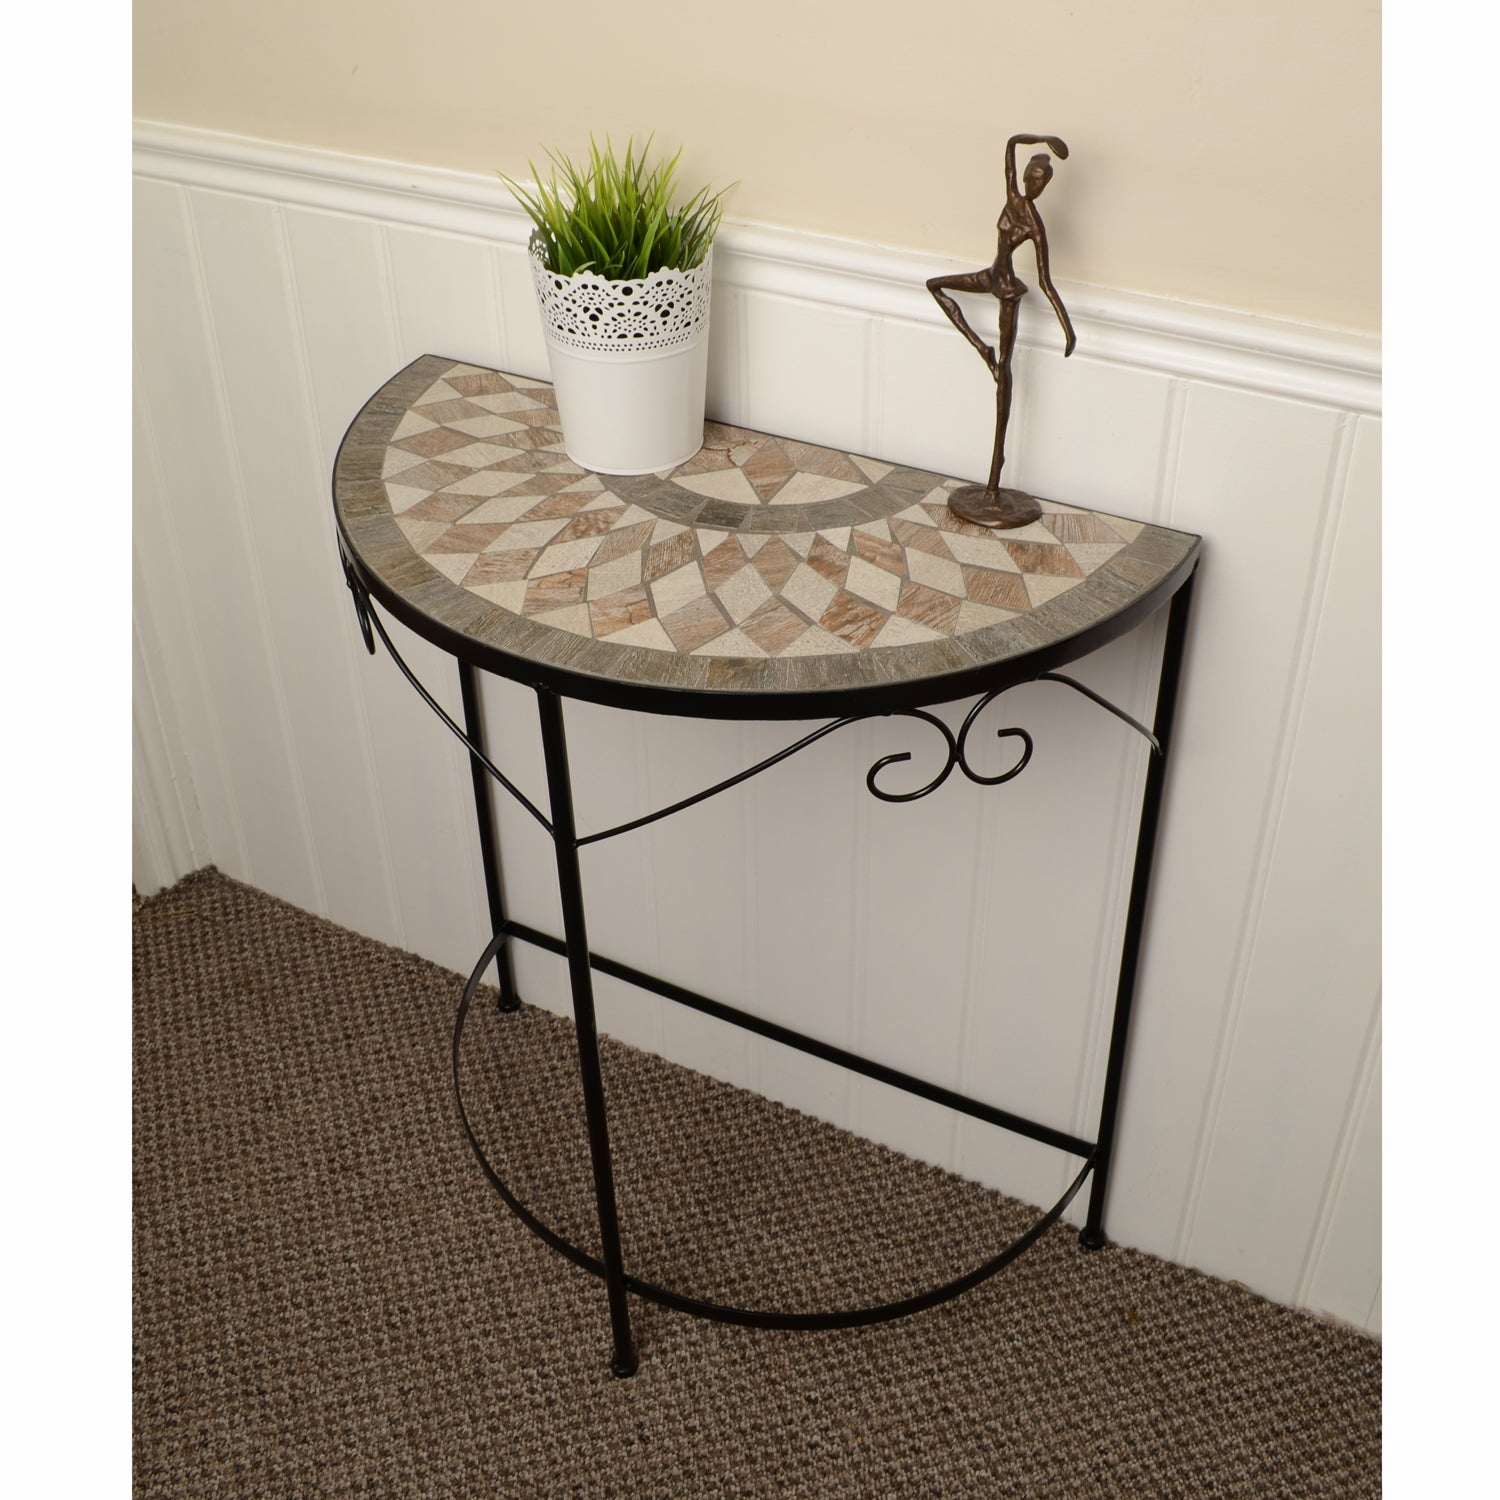 Summer Terrace Brava Semi Table - Ruby's Garden Boutique